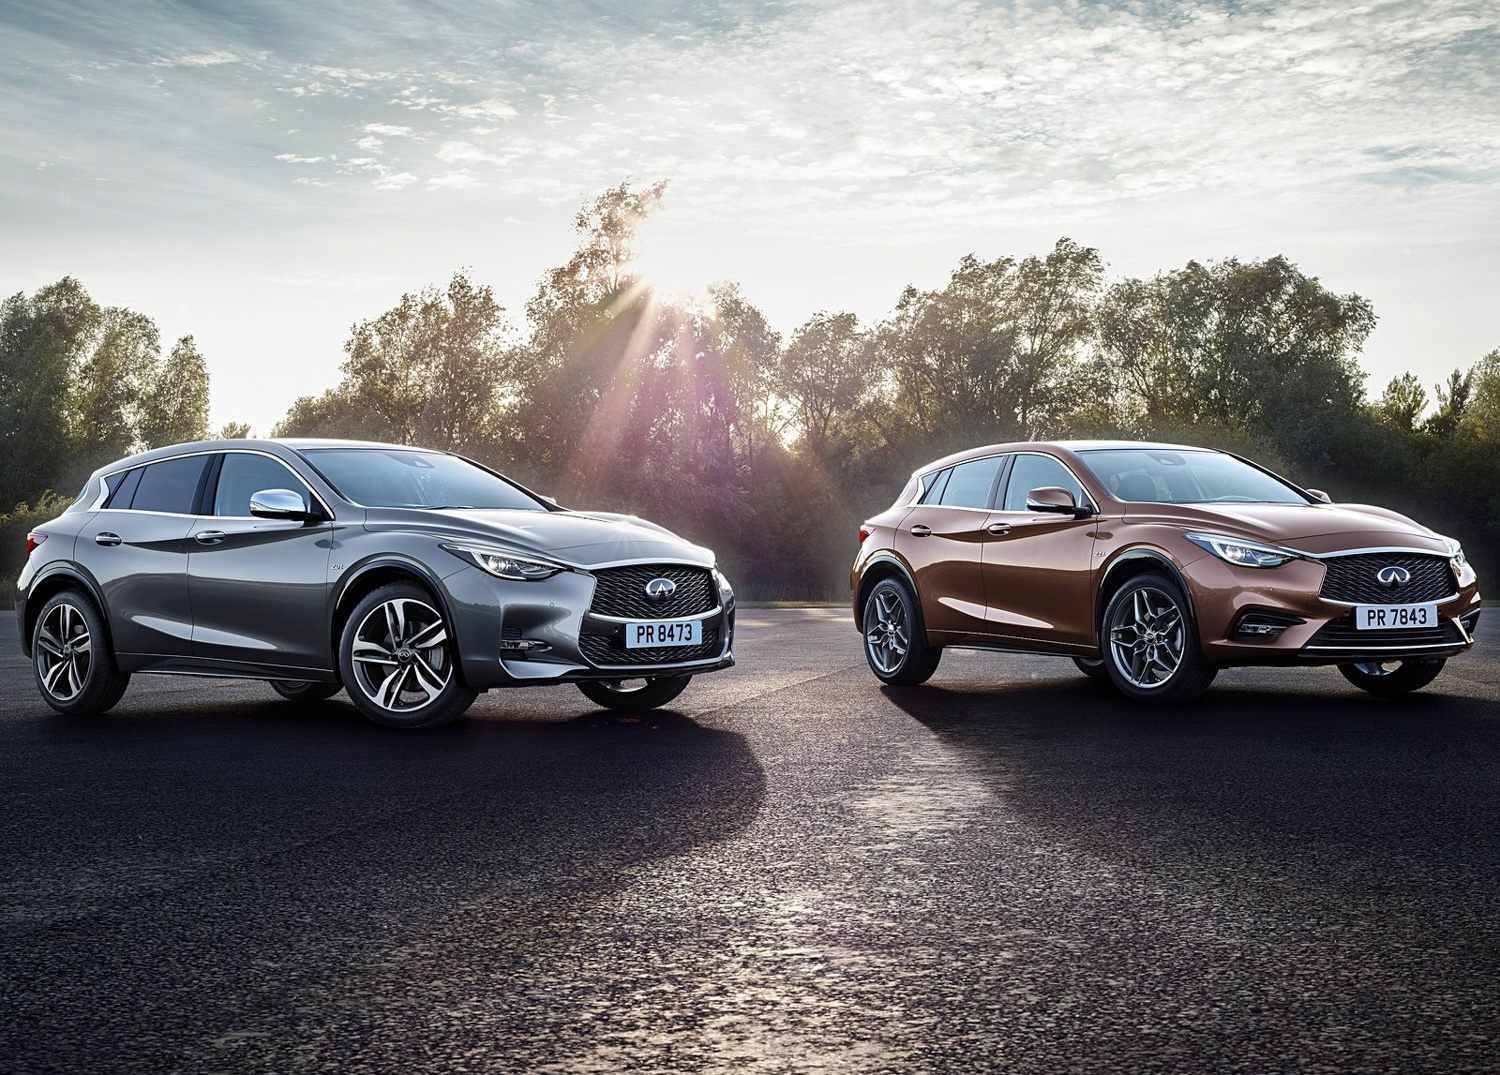 2017 Infinity QX30 3/4 front sun rise